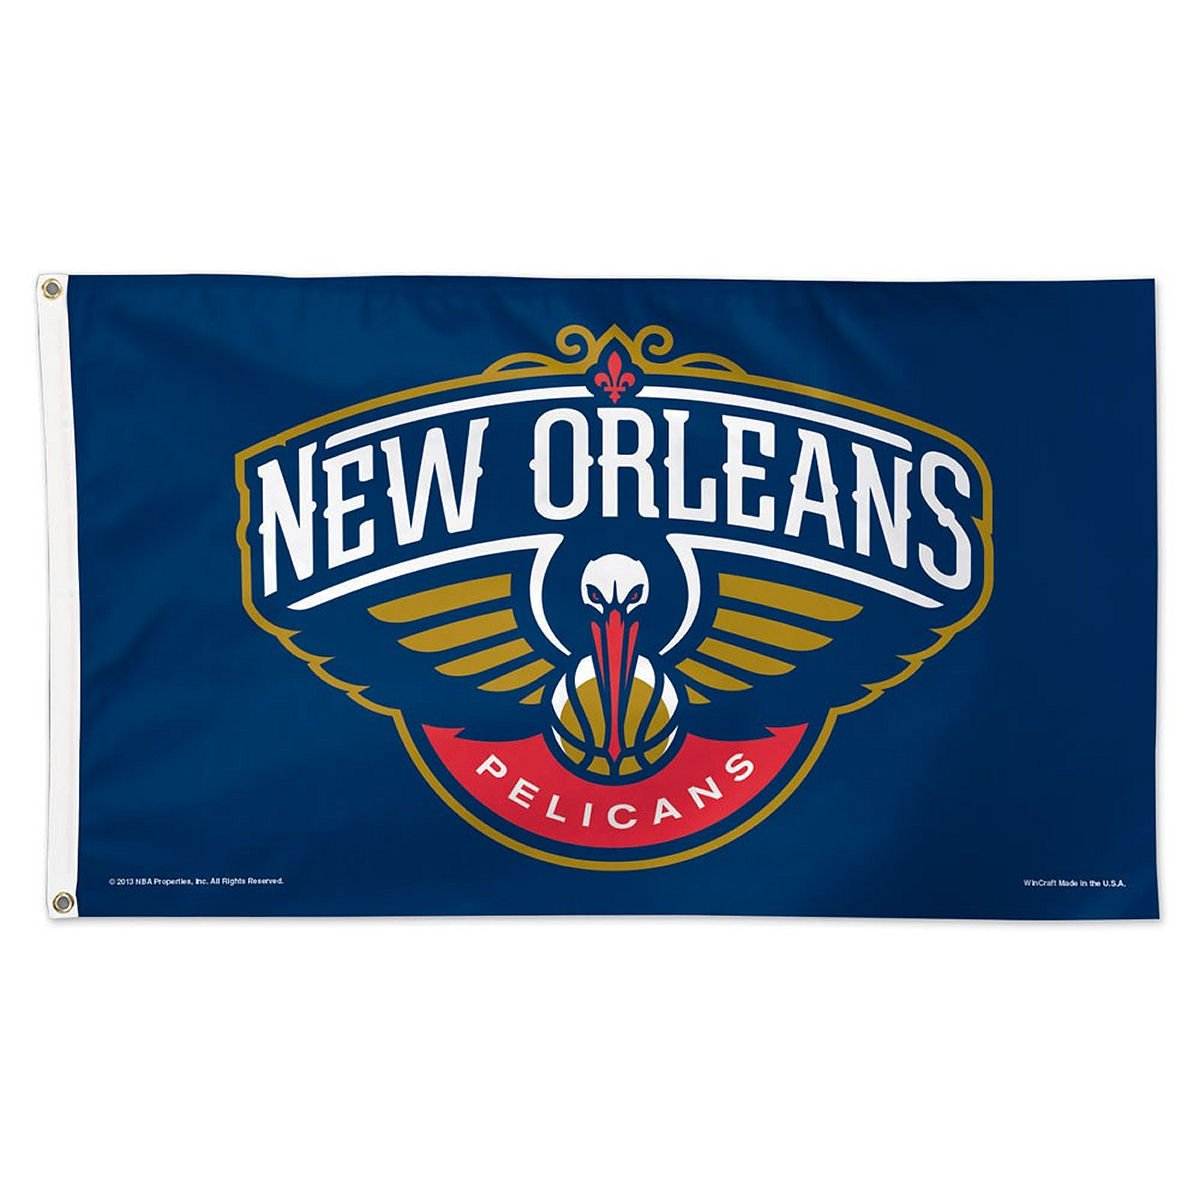 WinCraft NBA New Orleans Pelicans Flag,blue,3'x5' by WinCraft